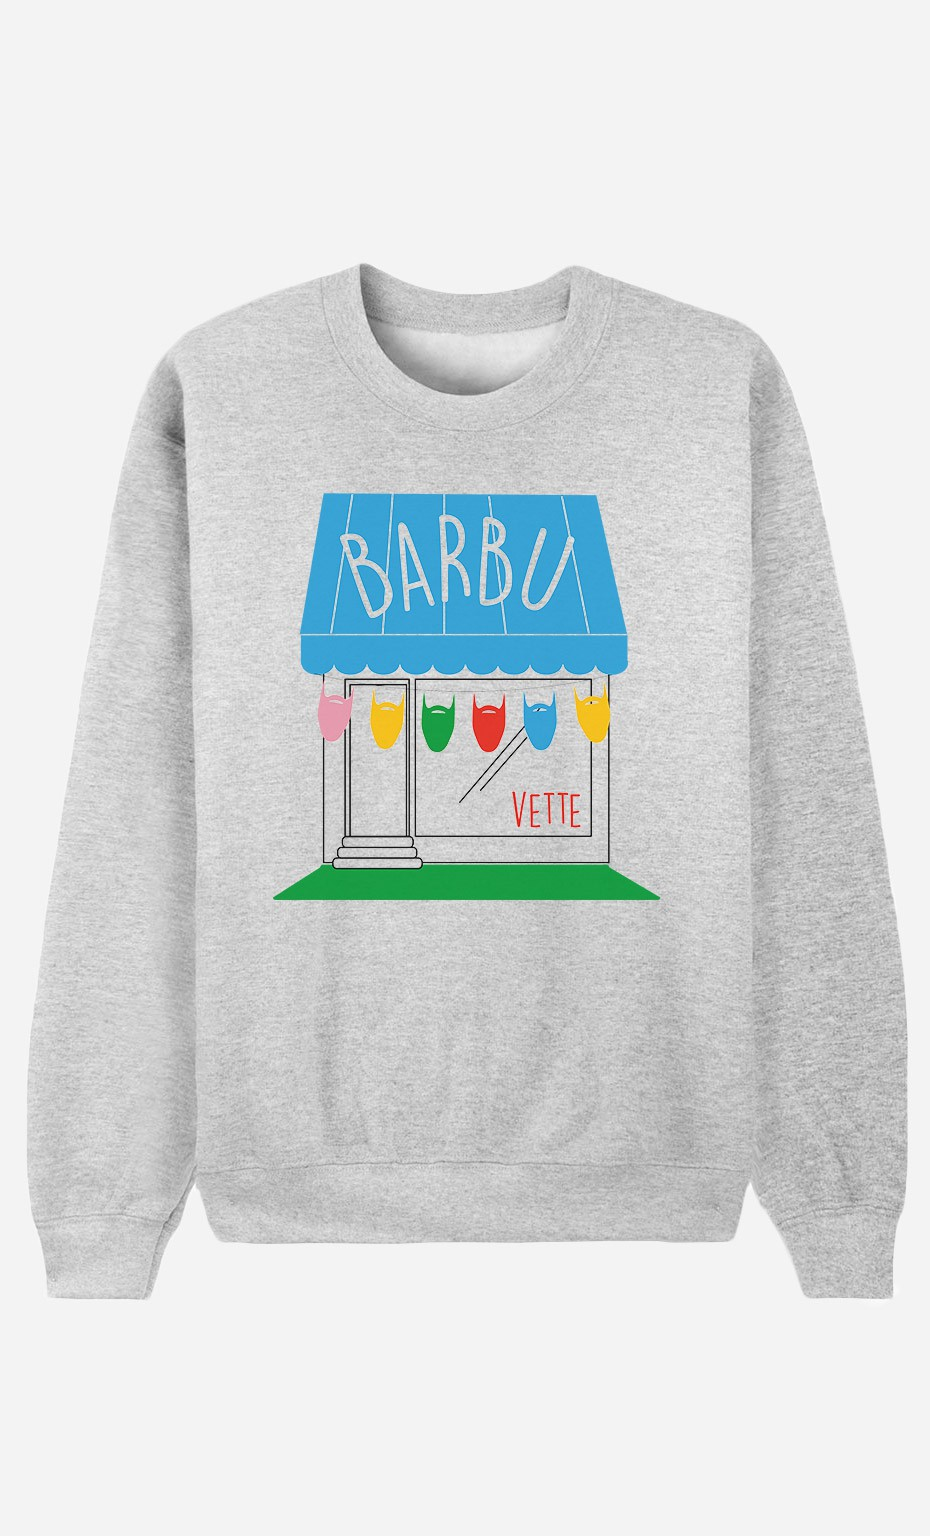 Sweat Barbu'vette